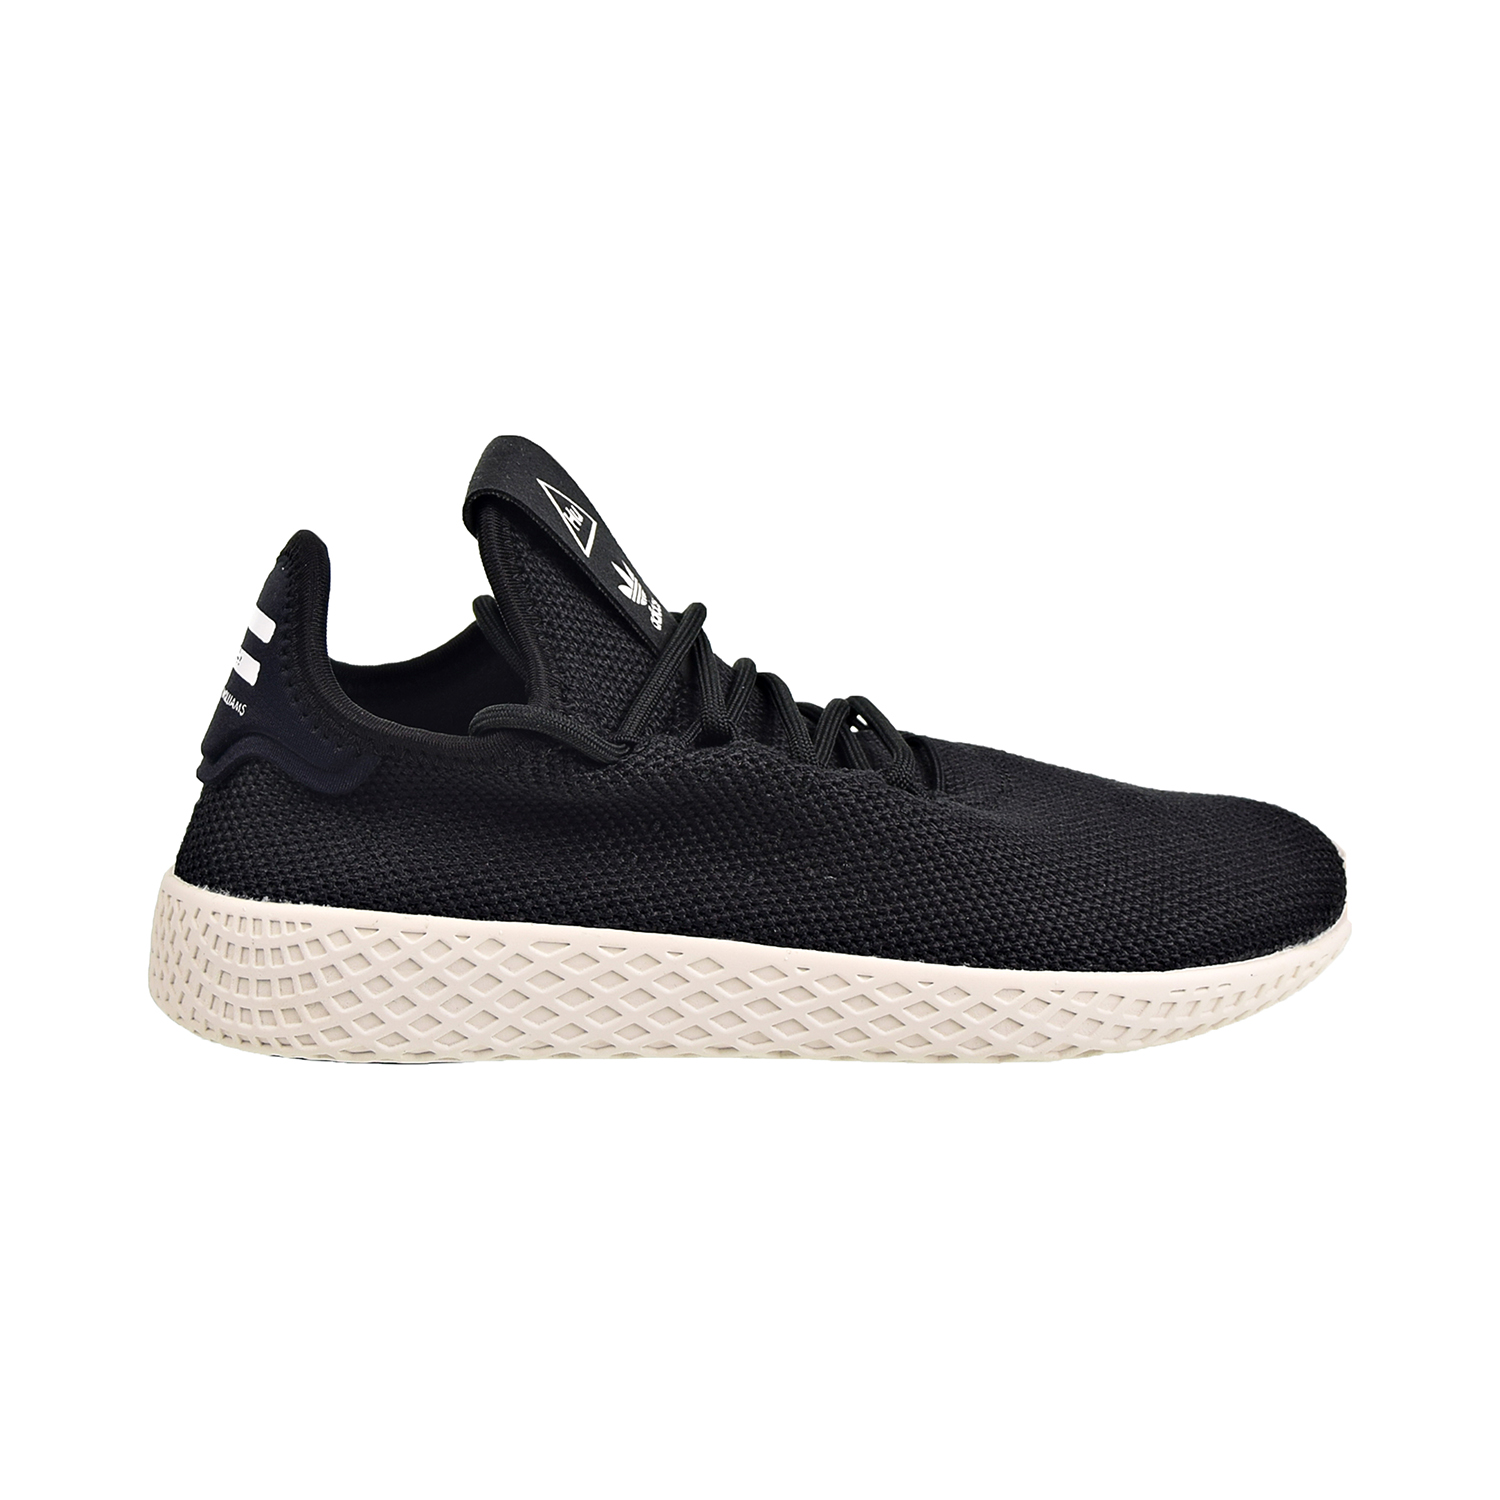 Details about Adidas PW Tennis HU J Big Kid's Shoes Black-White BD7768